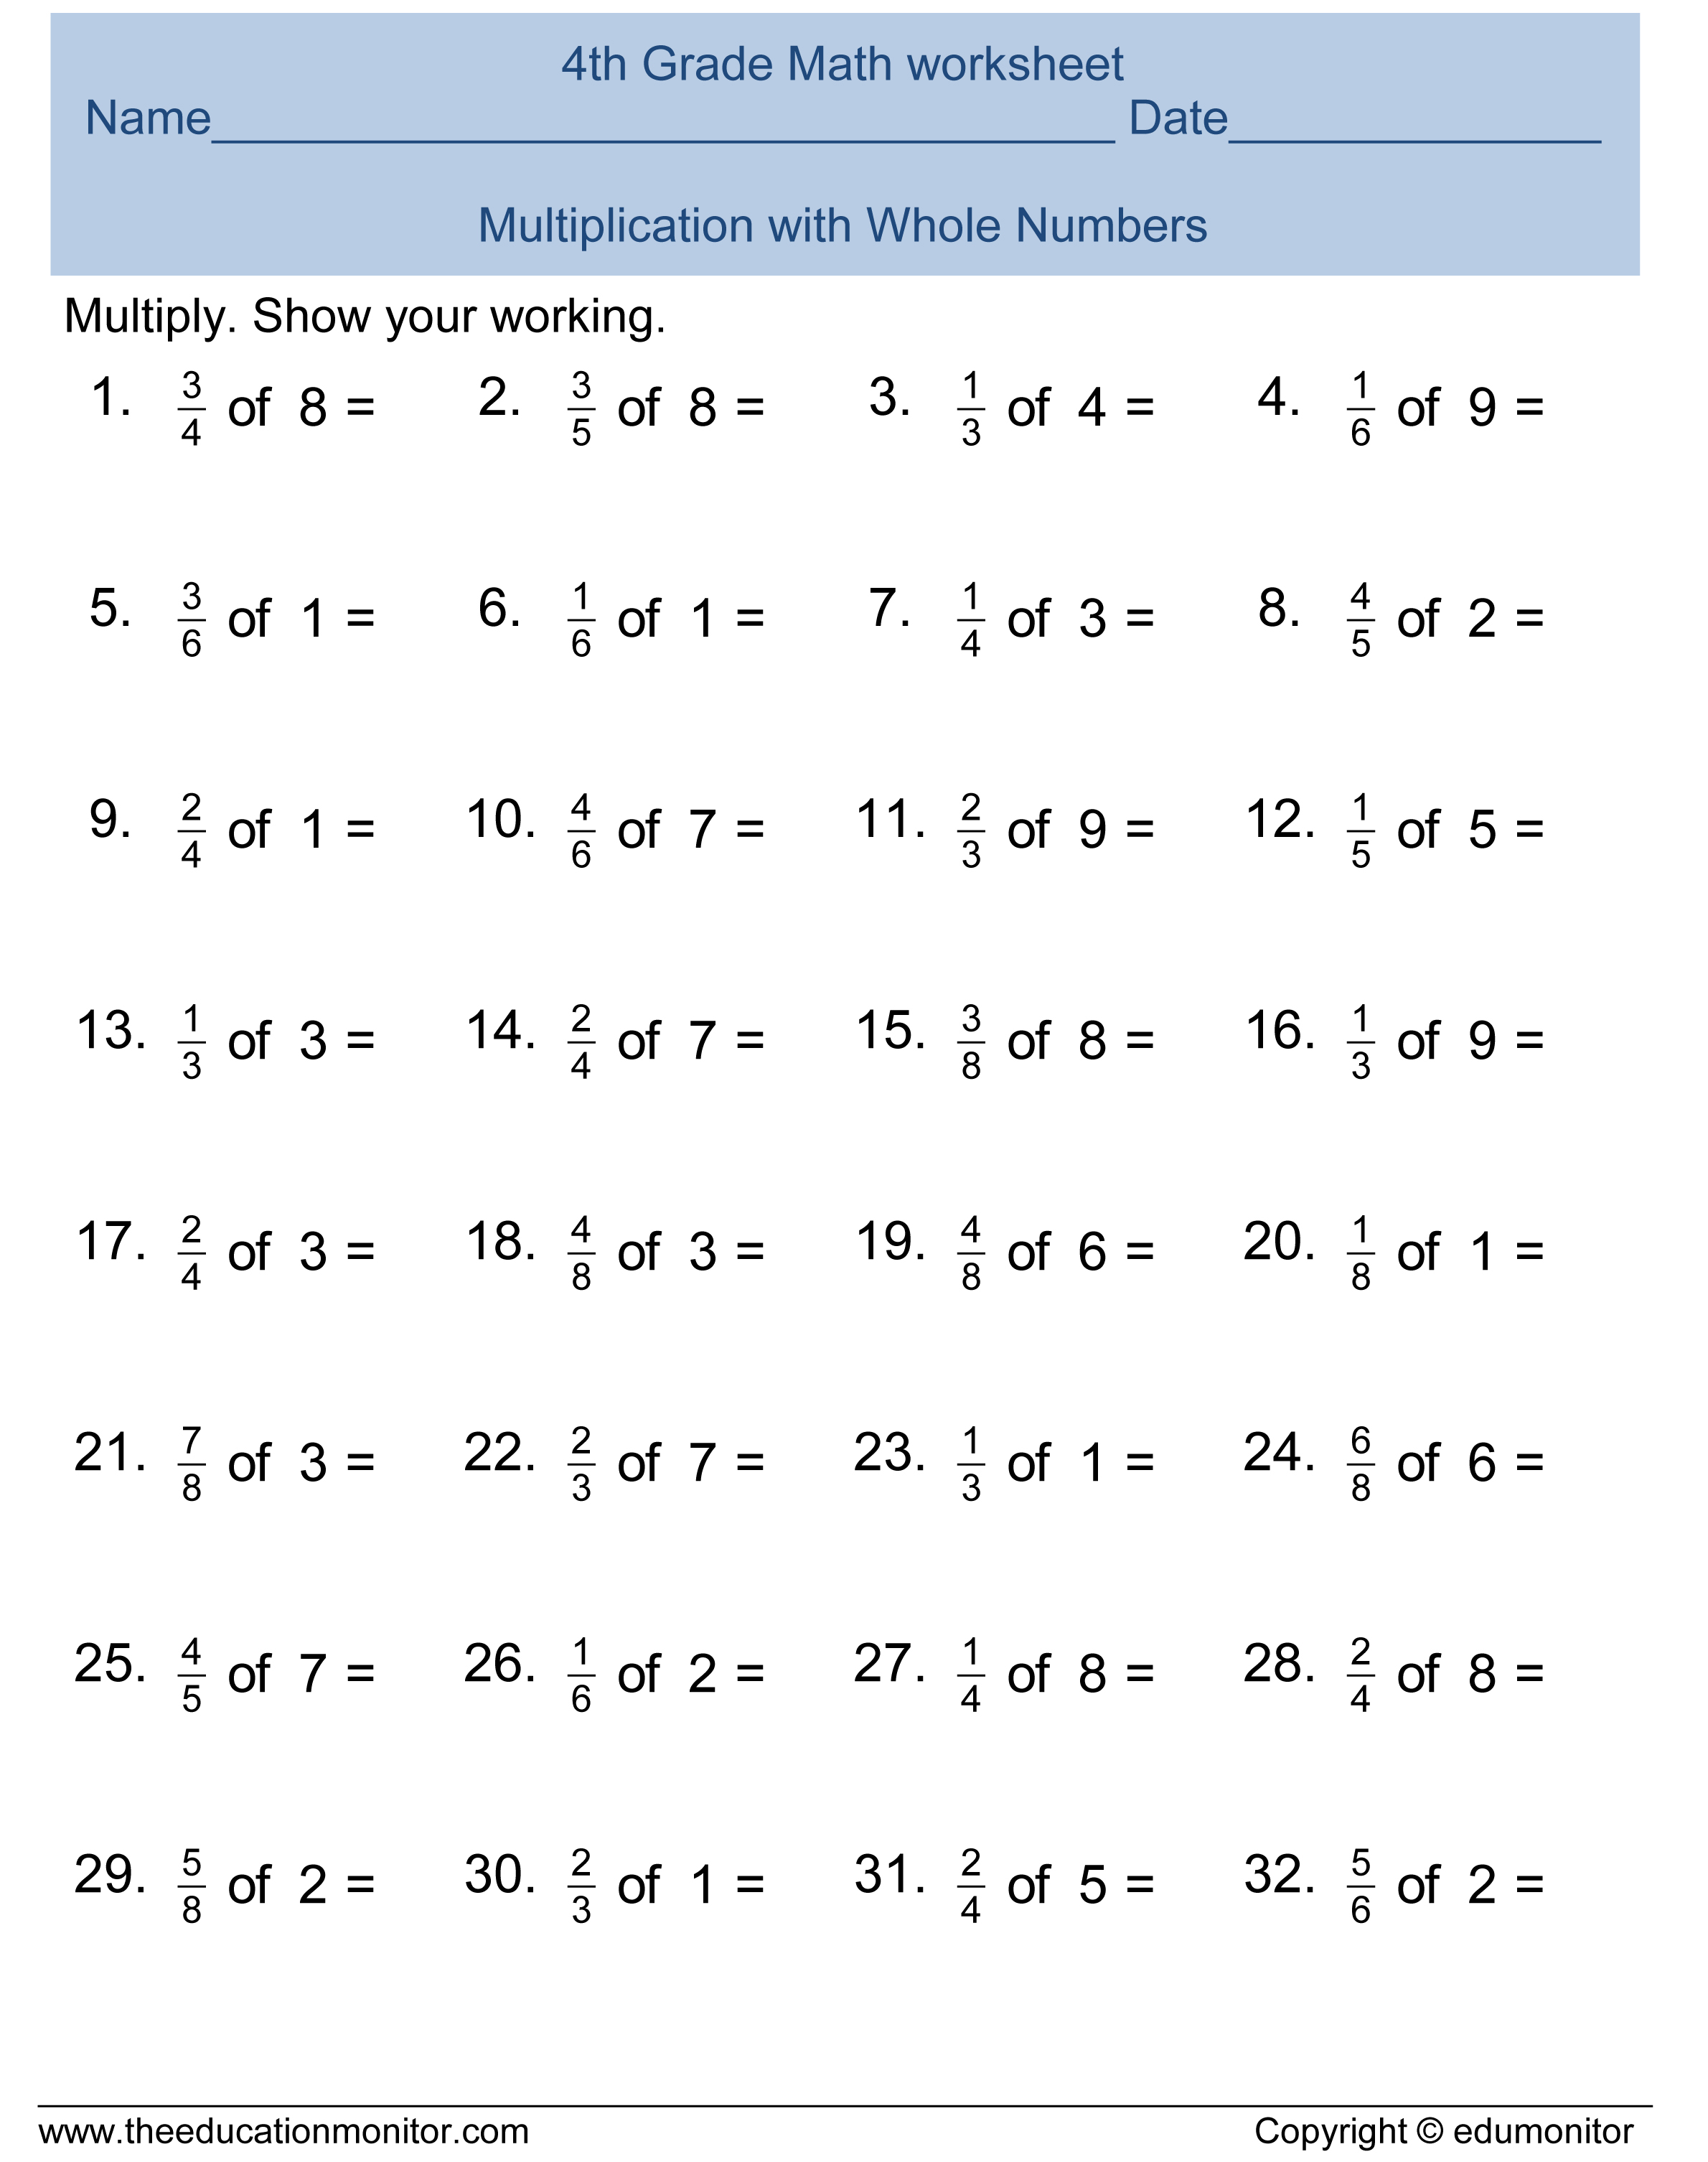 Fourth Grade Math Worksheets Archives